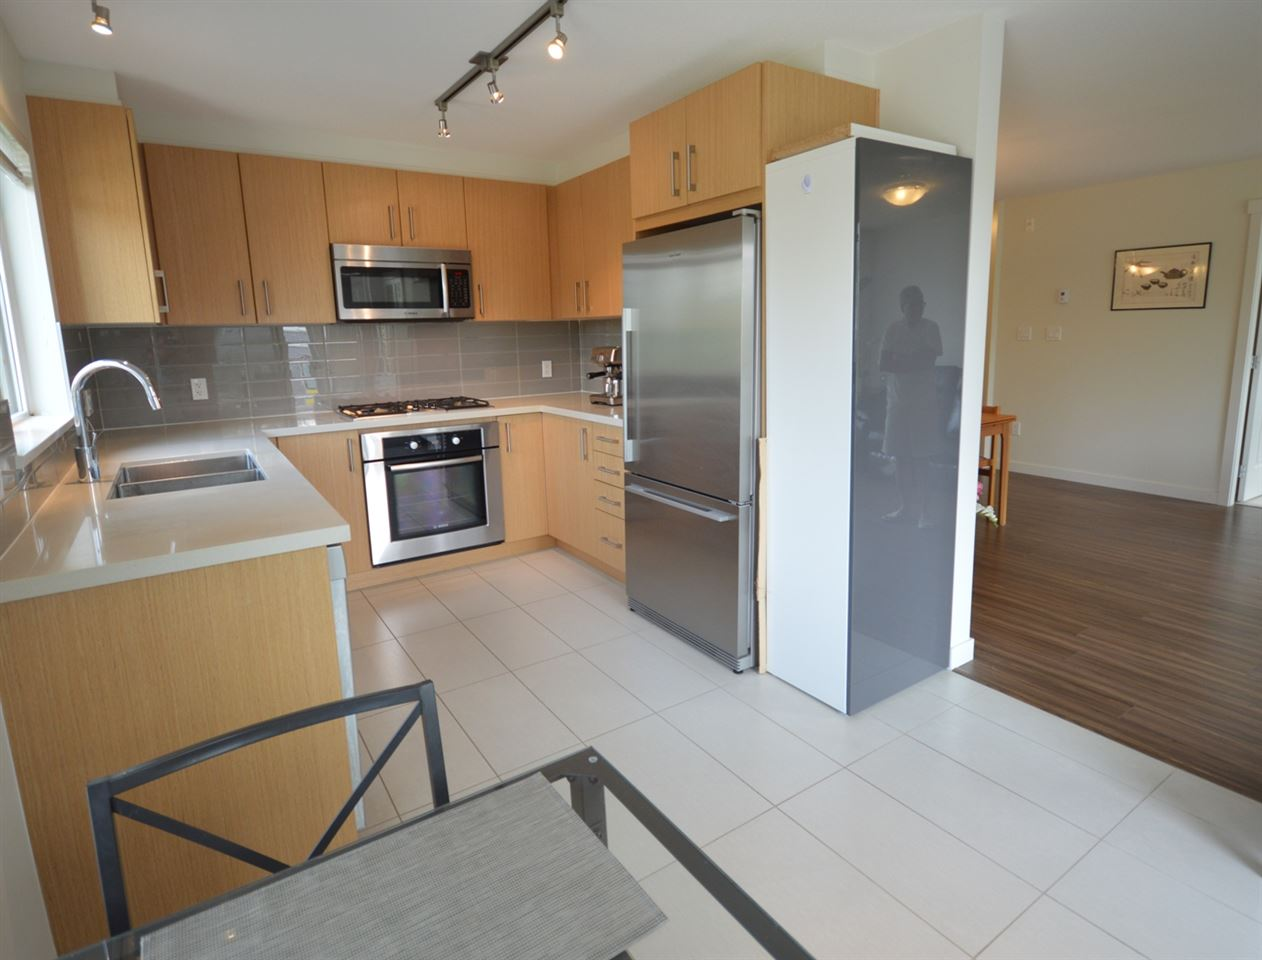 Condo Apartment at 317 3133 RIVERWALK AVENUE, Unit 317, Vancouver East, British Columbia. Image 2